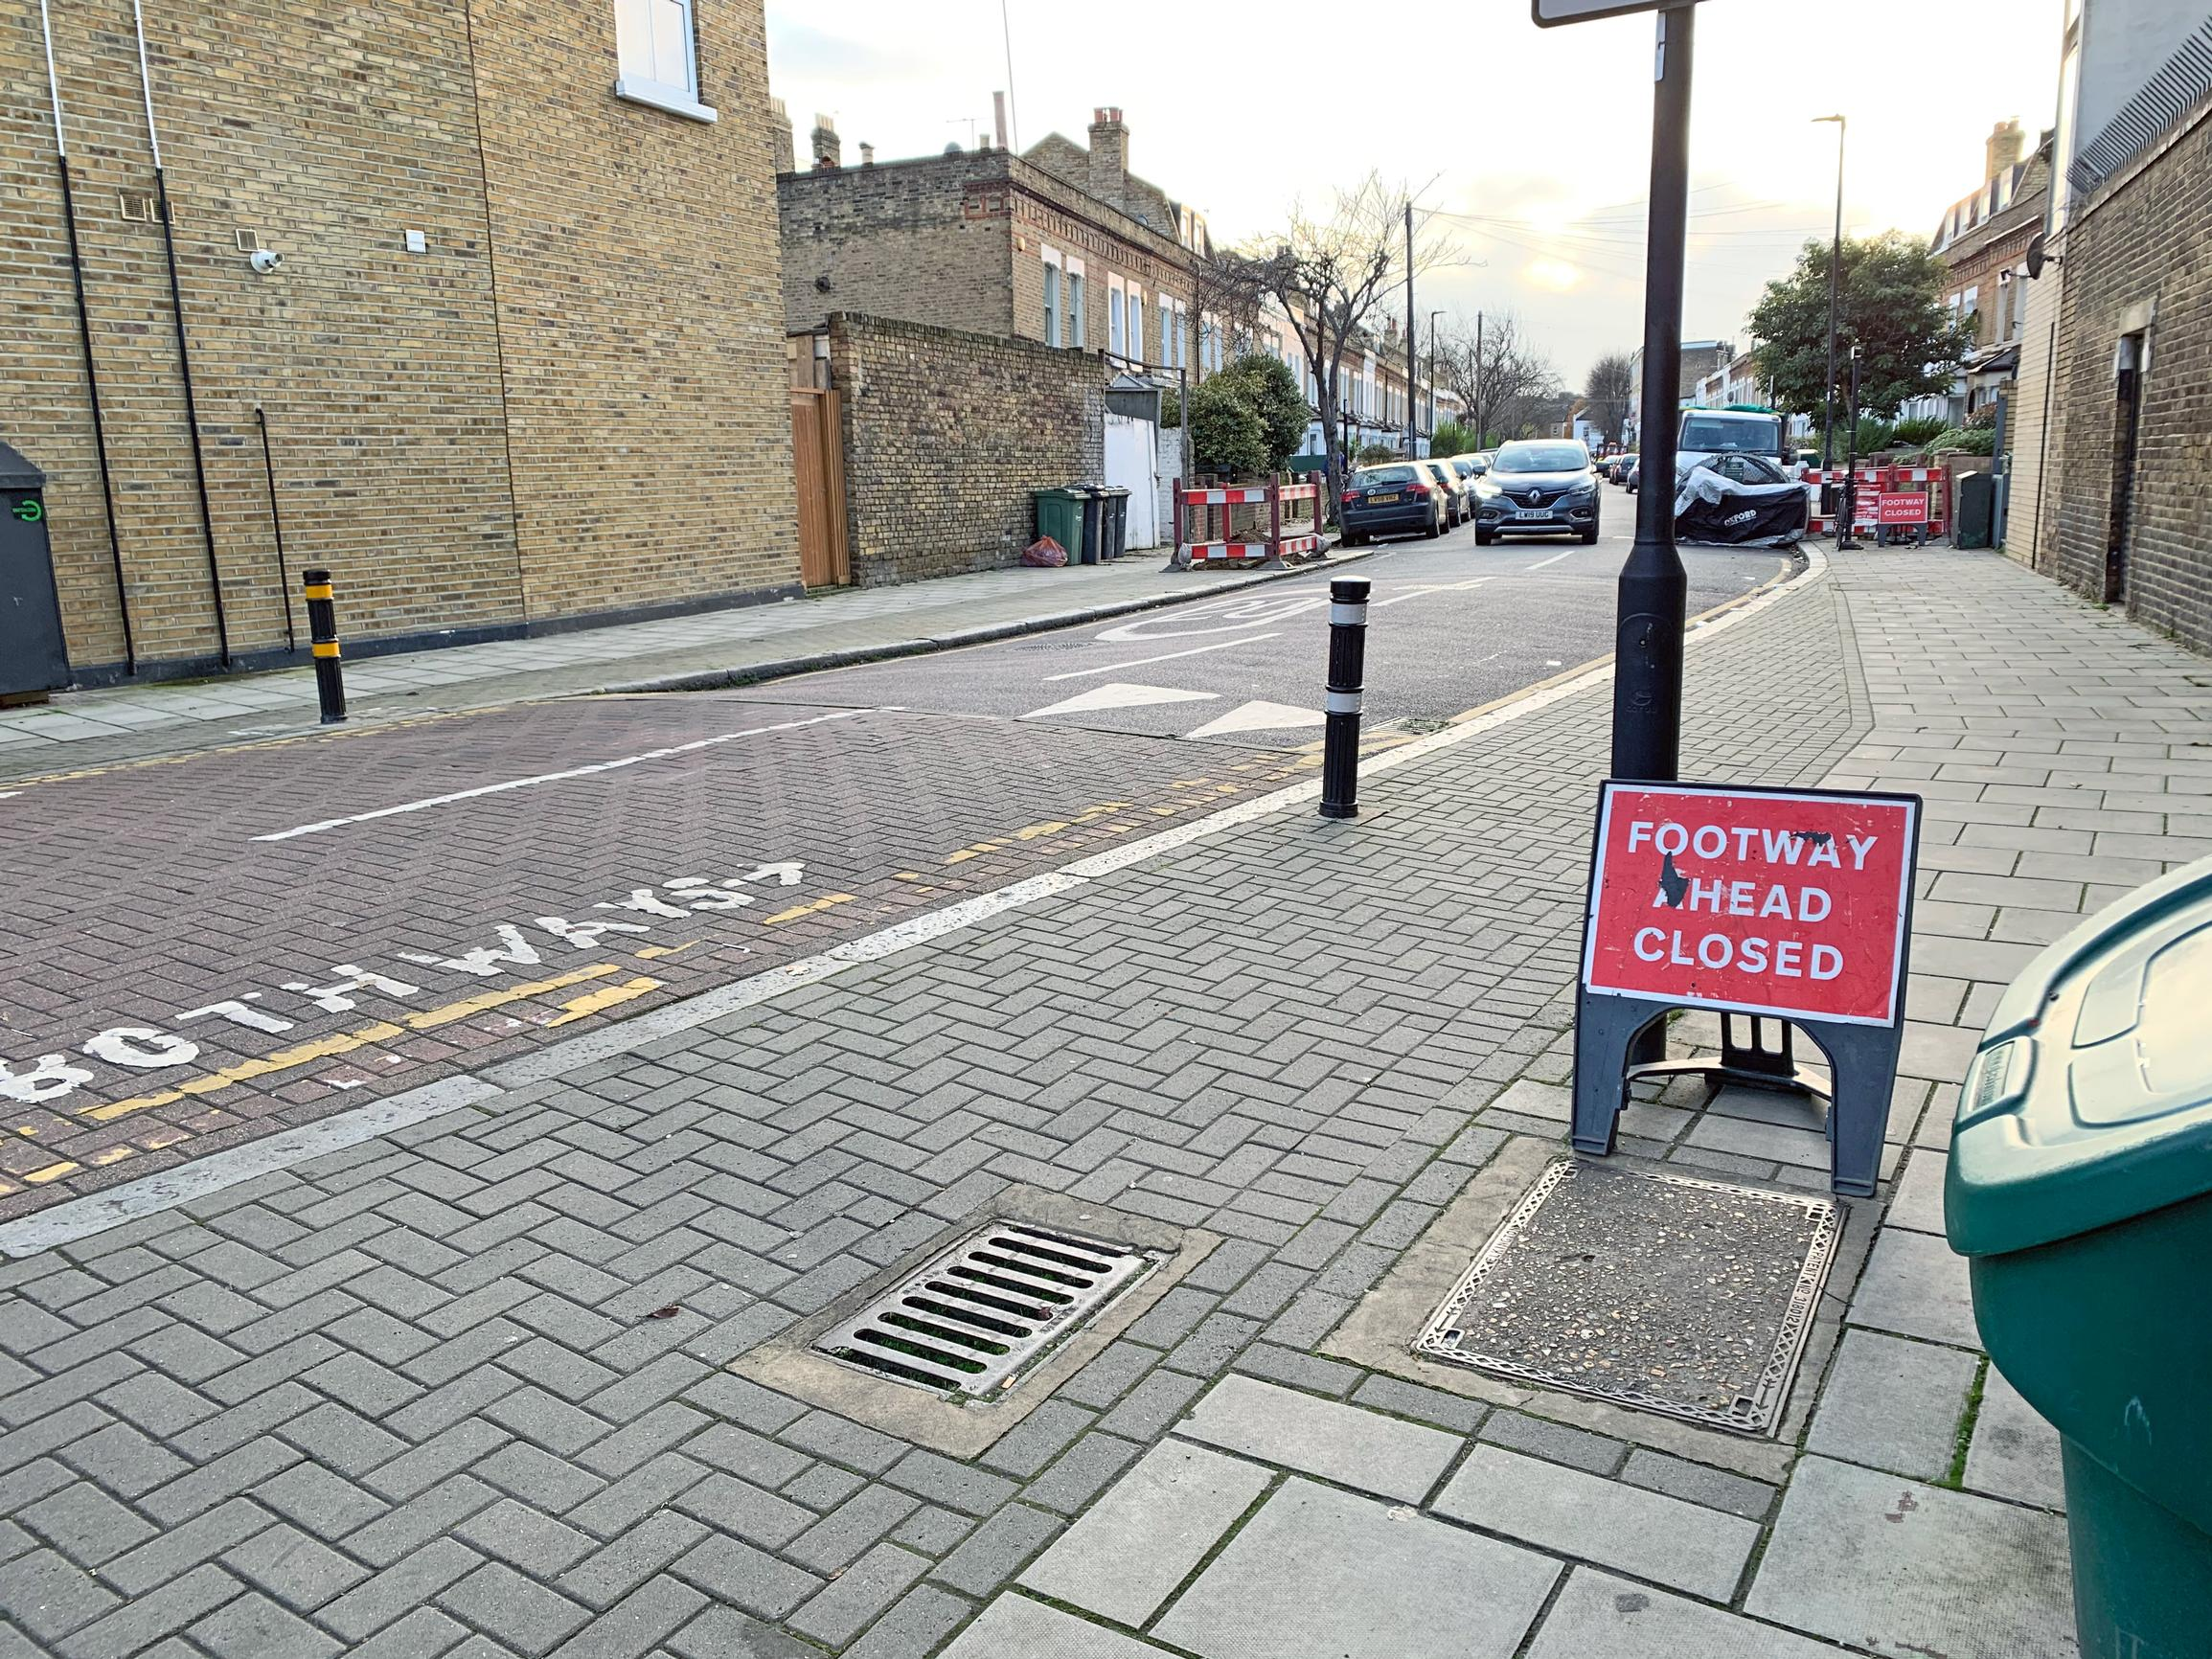 Good (though not the tactile paving): Lambeth